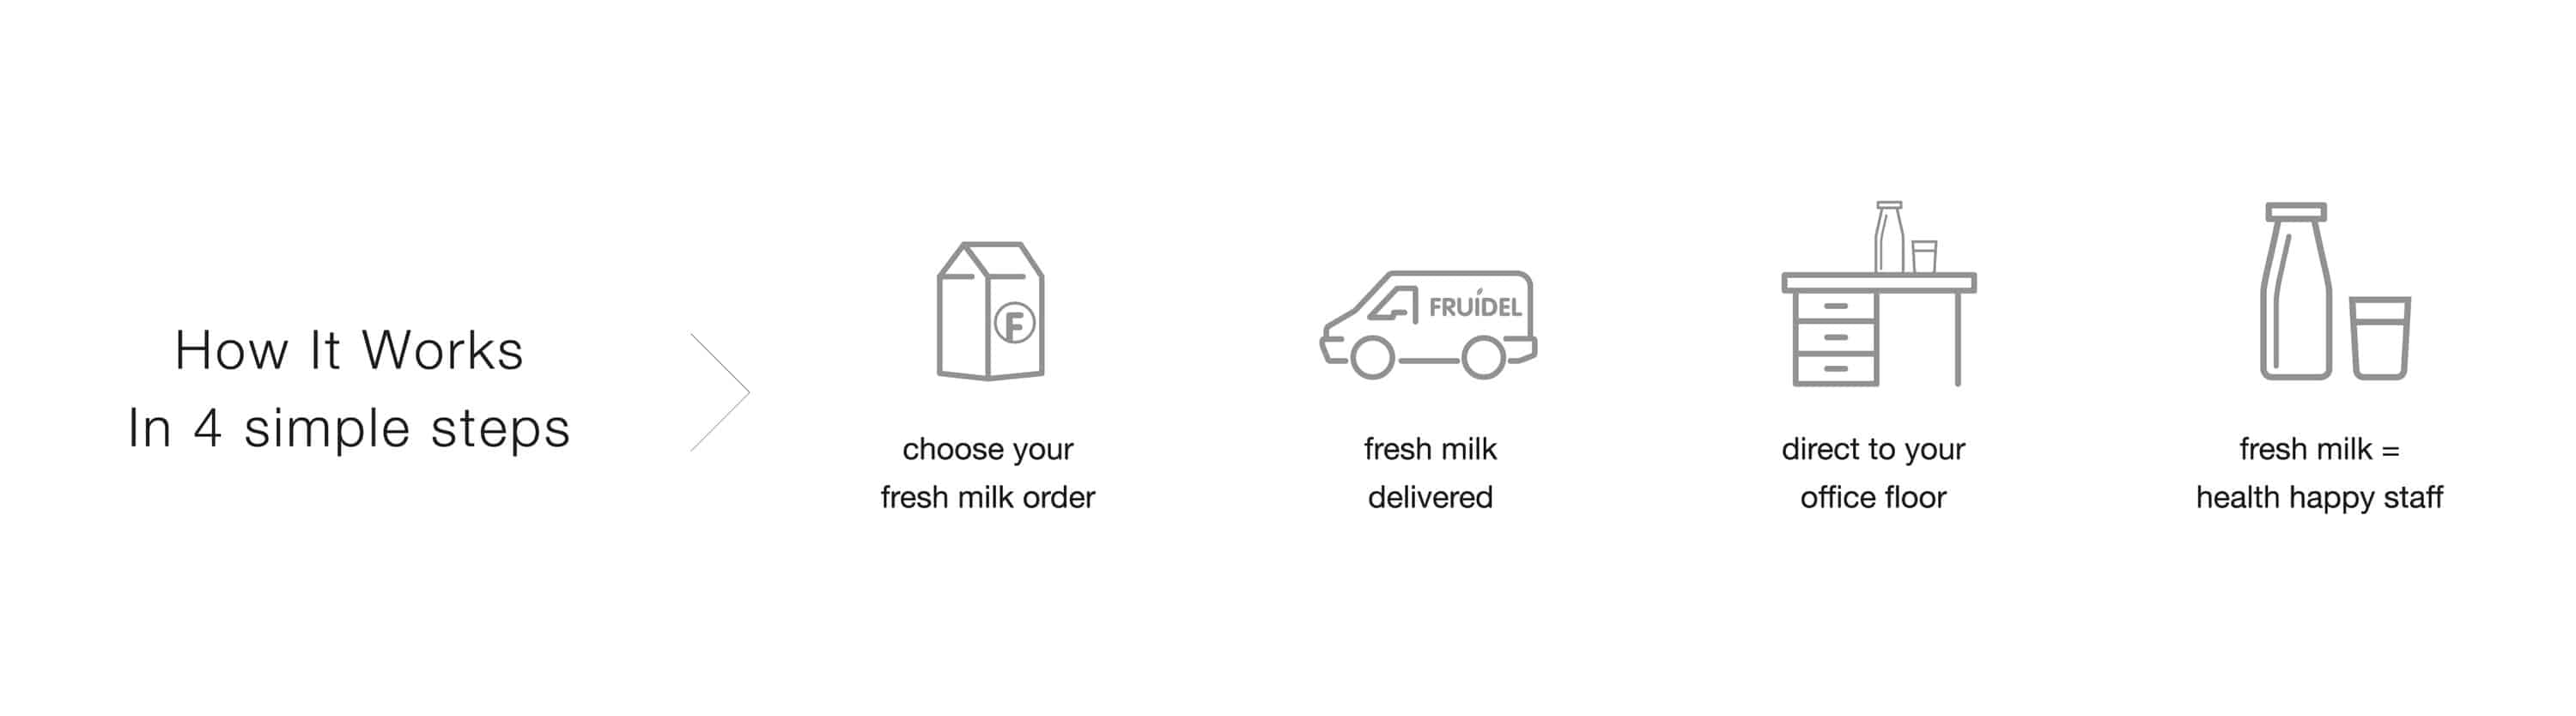 Delivering milk nationwide - how it works